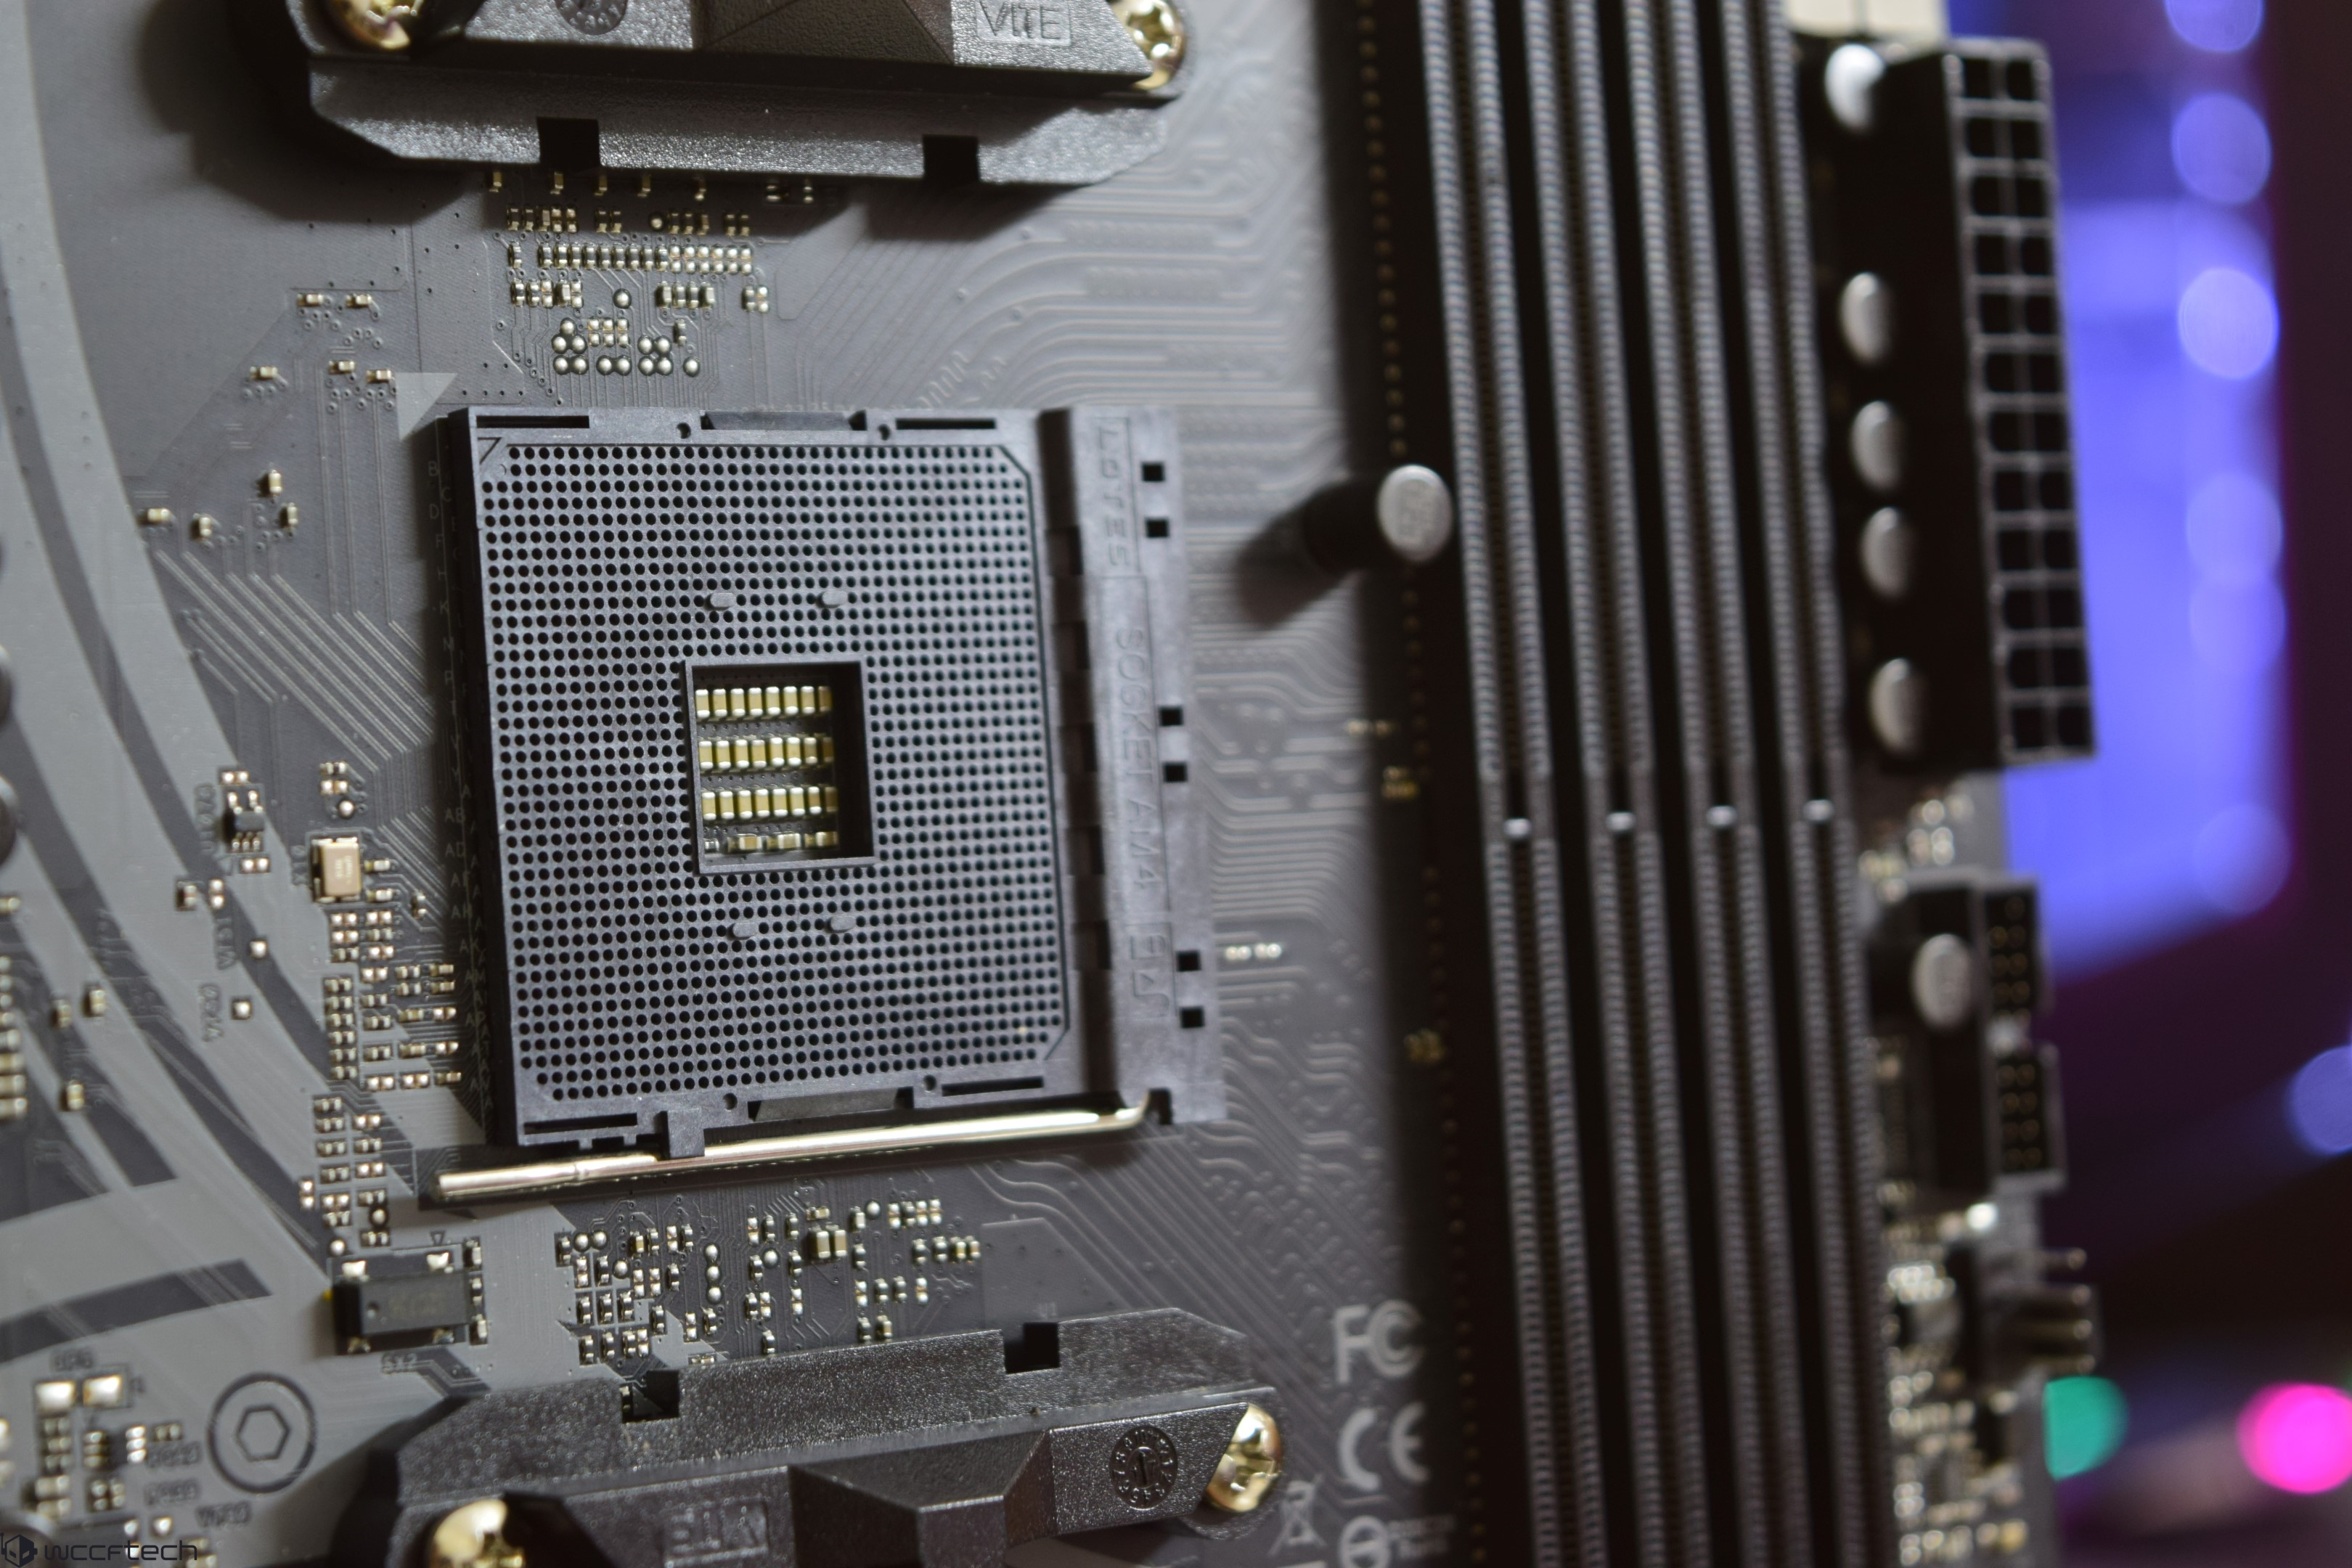 Amd Ryzen 7 2700 And X470 Motherboards Review Ft Asrock Asus